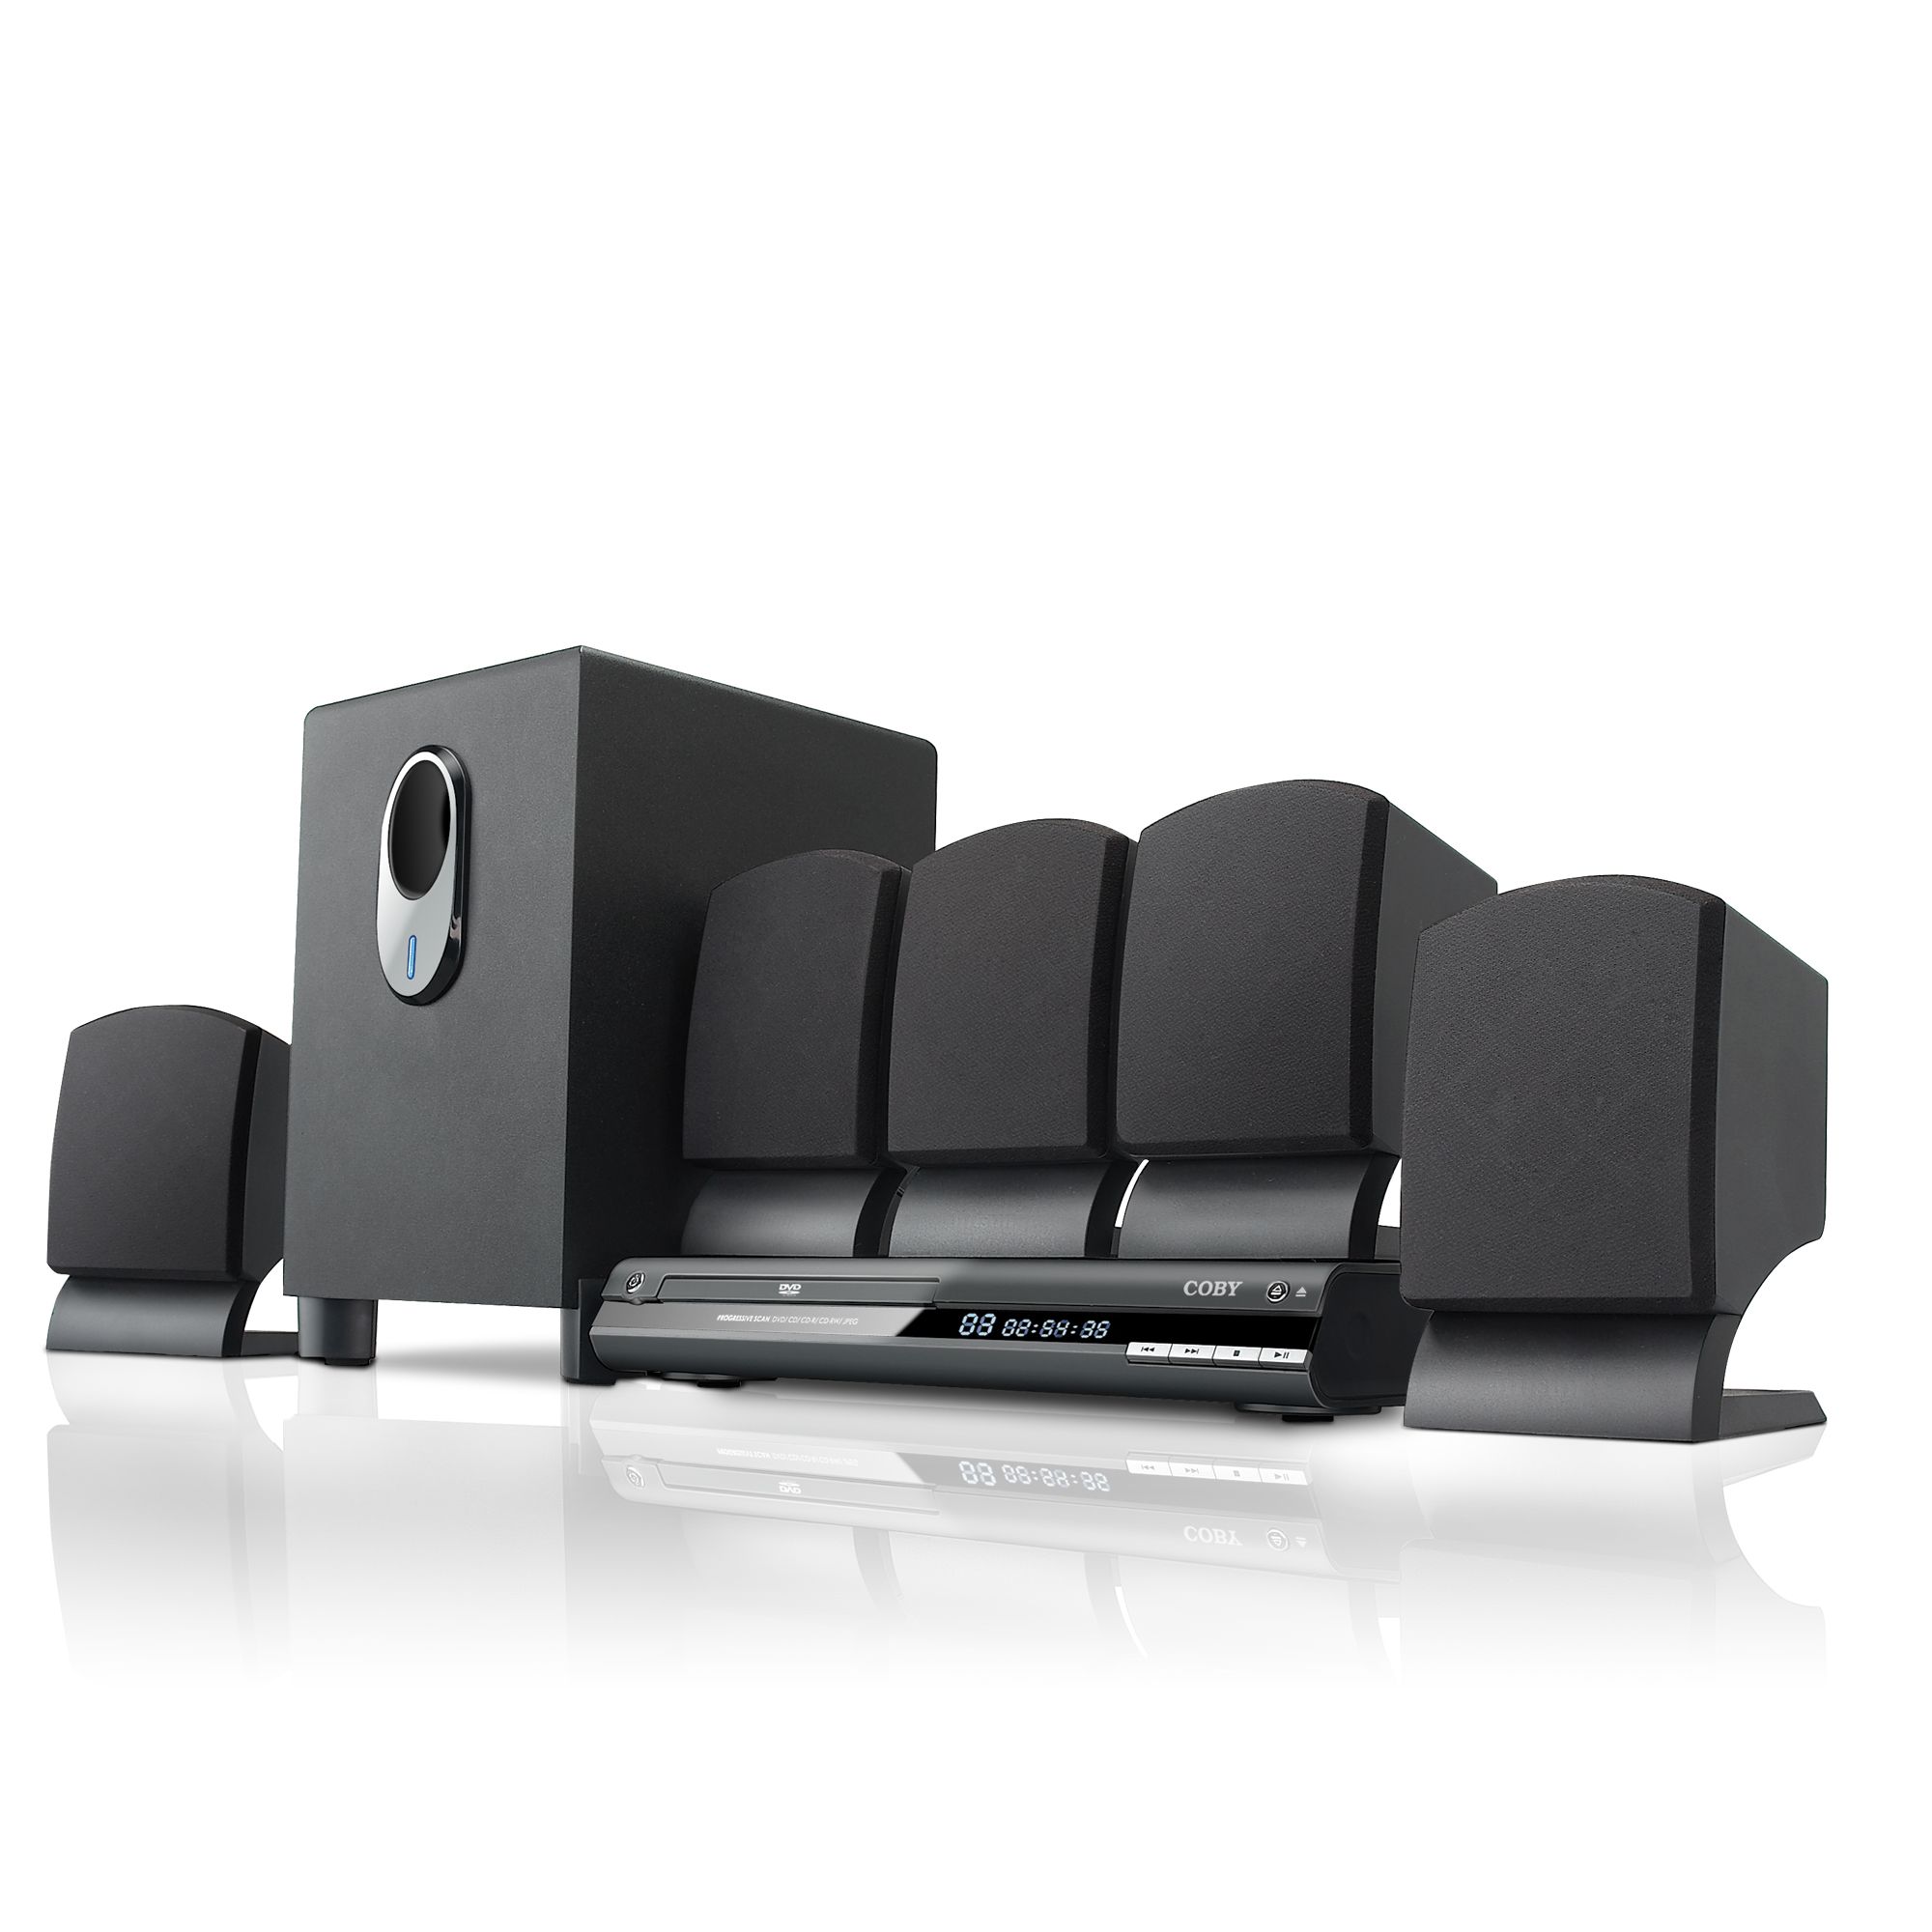 hight resolution of coby dvd765 5 1 channel dvd home theater system